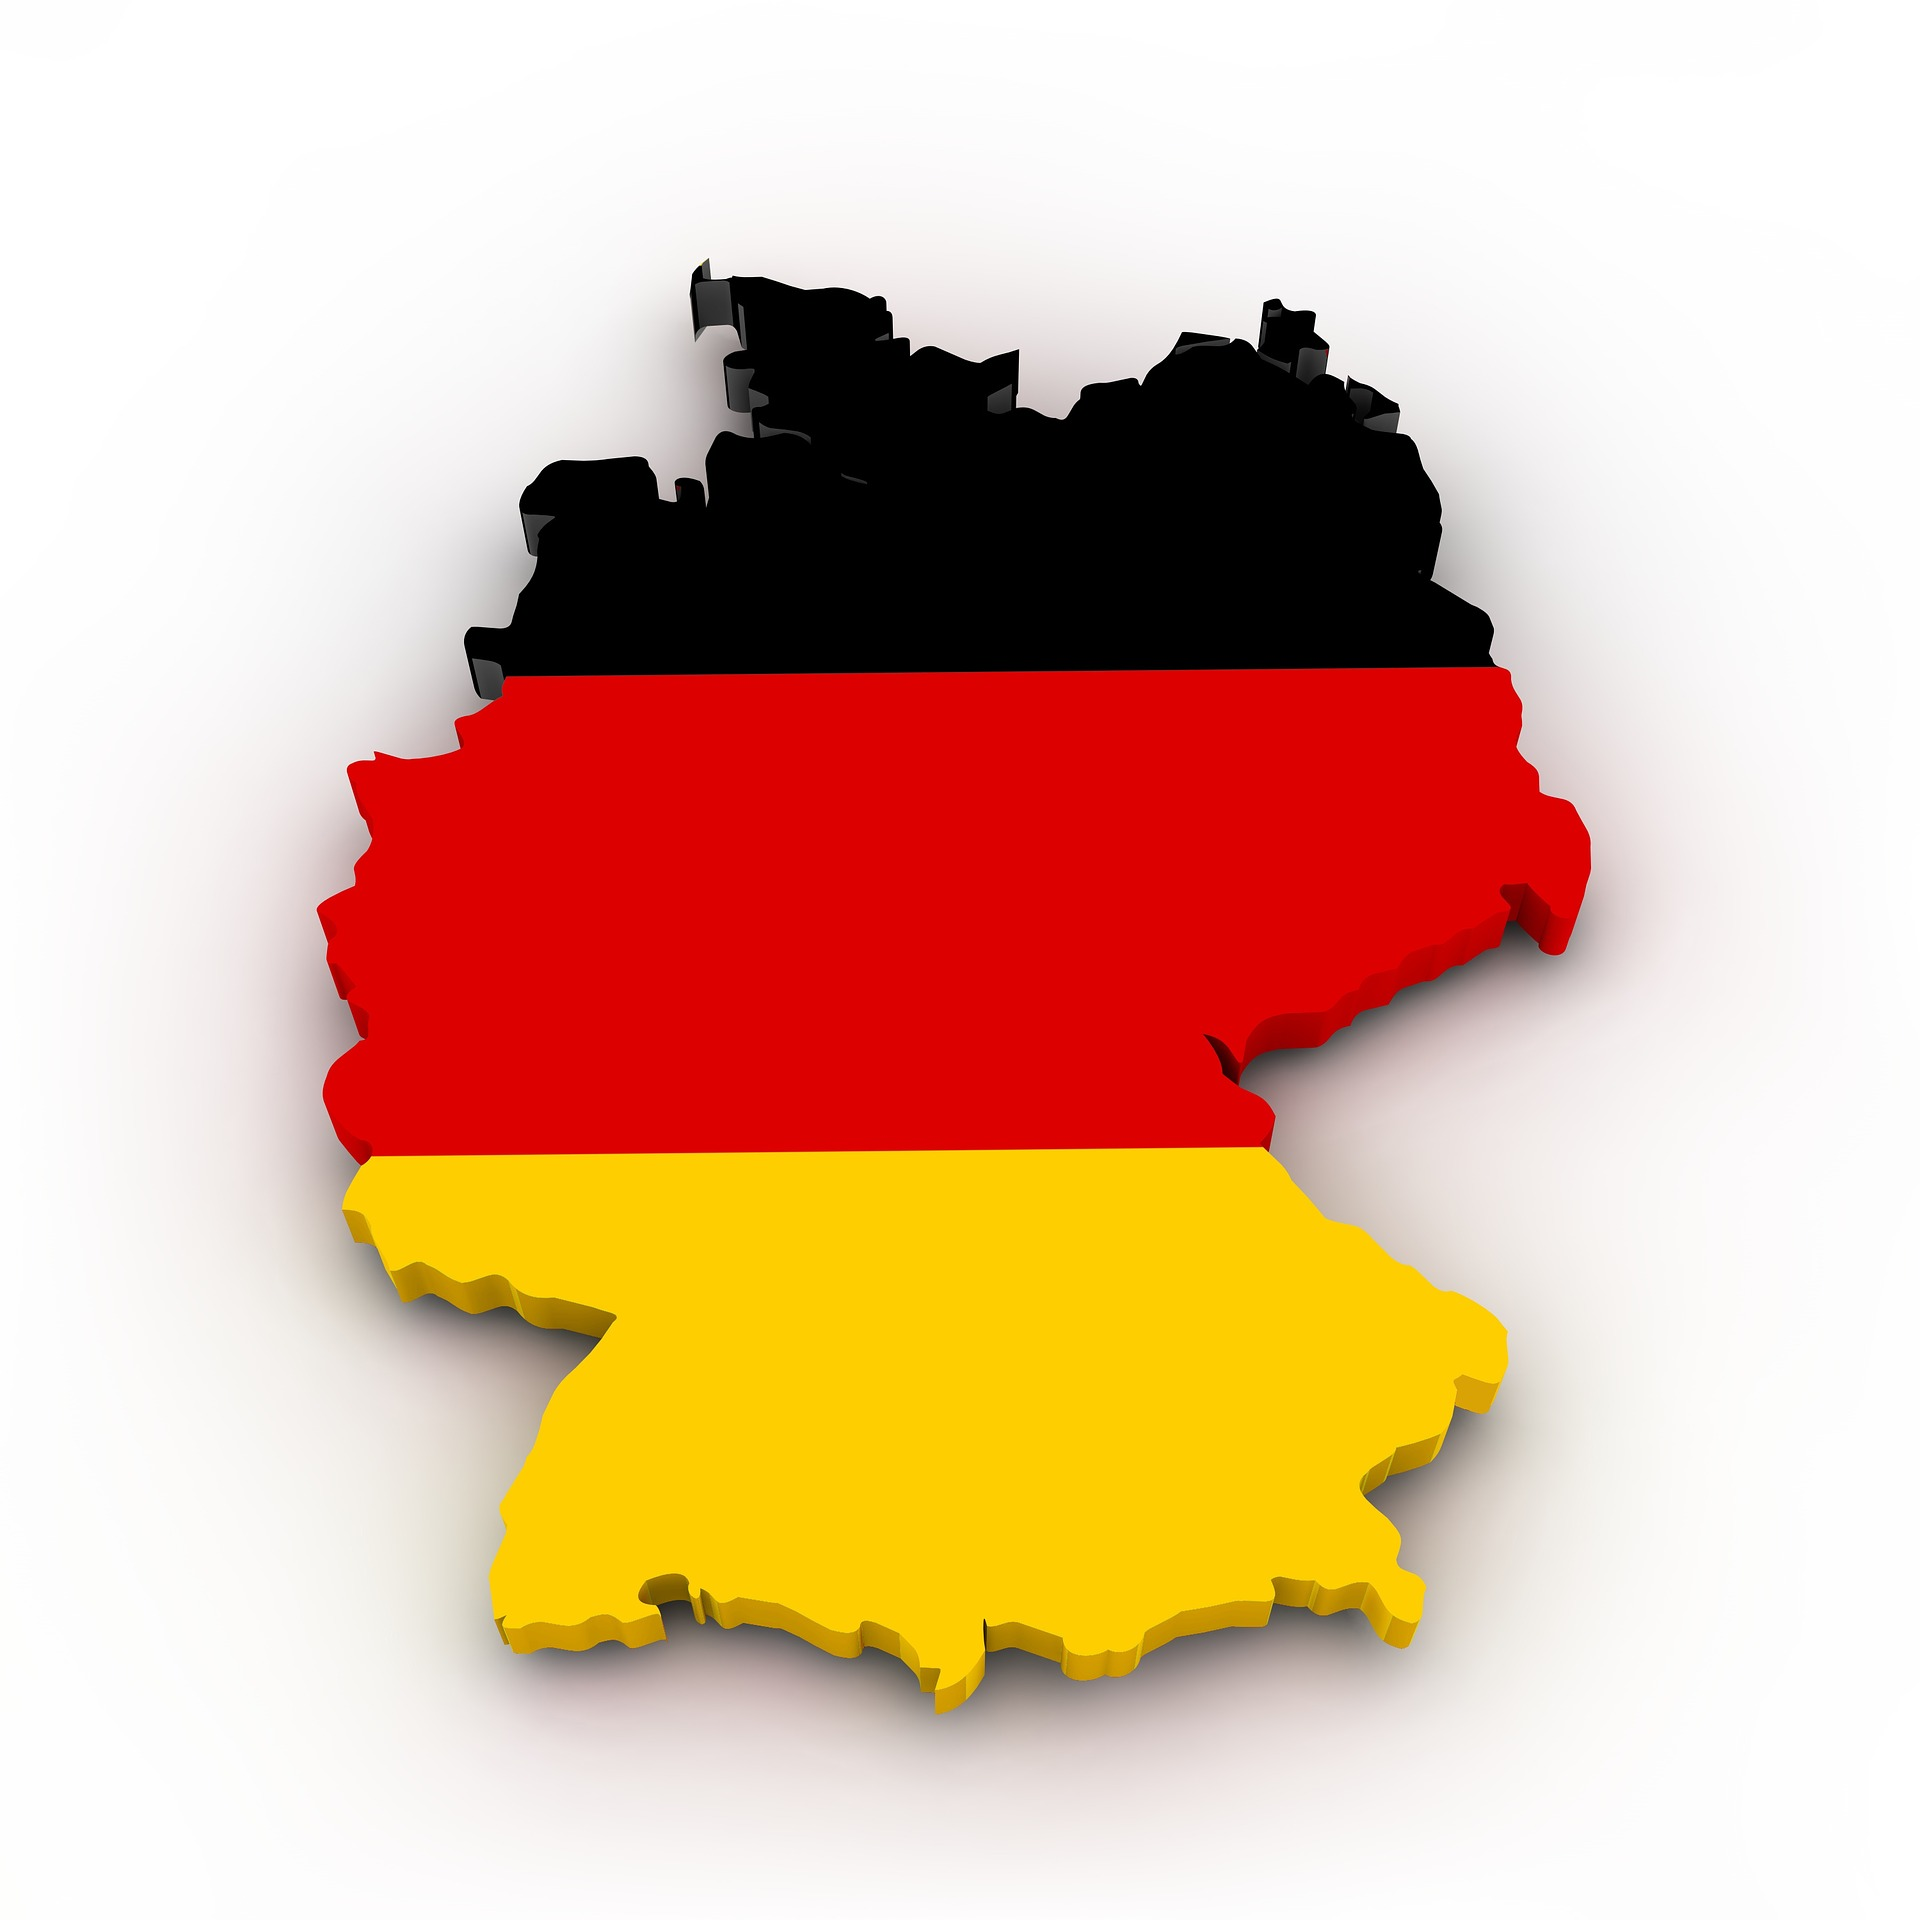 map of Germany made up of national flag